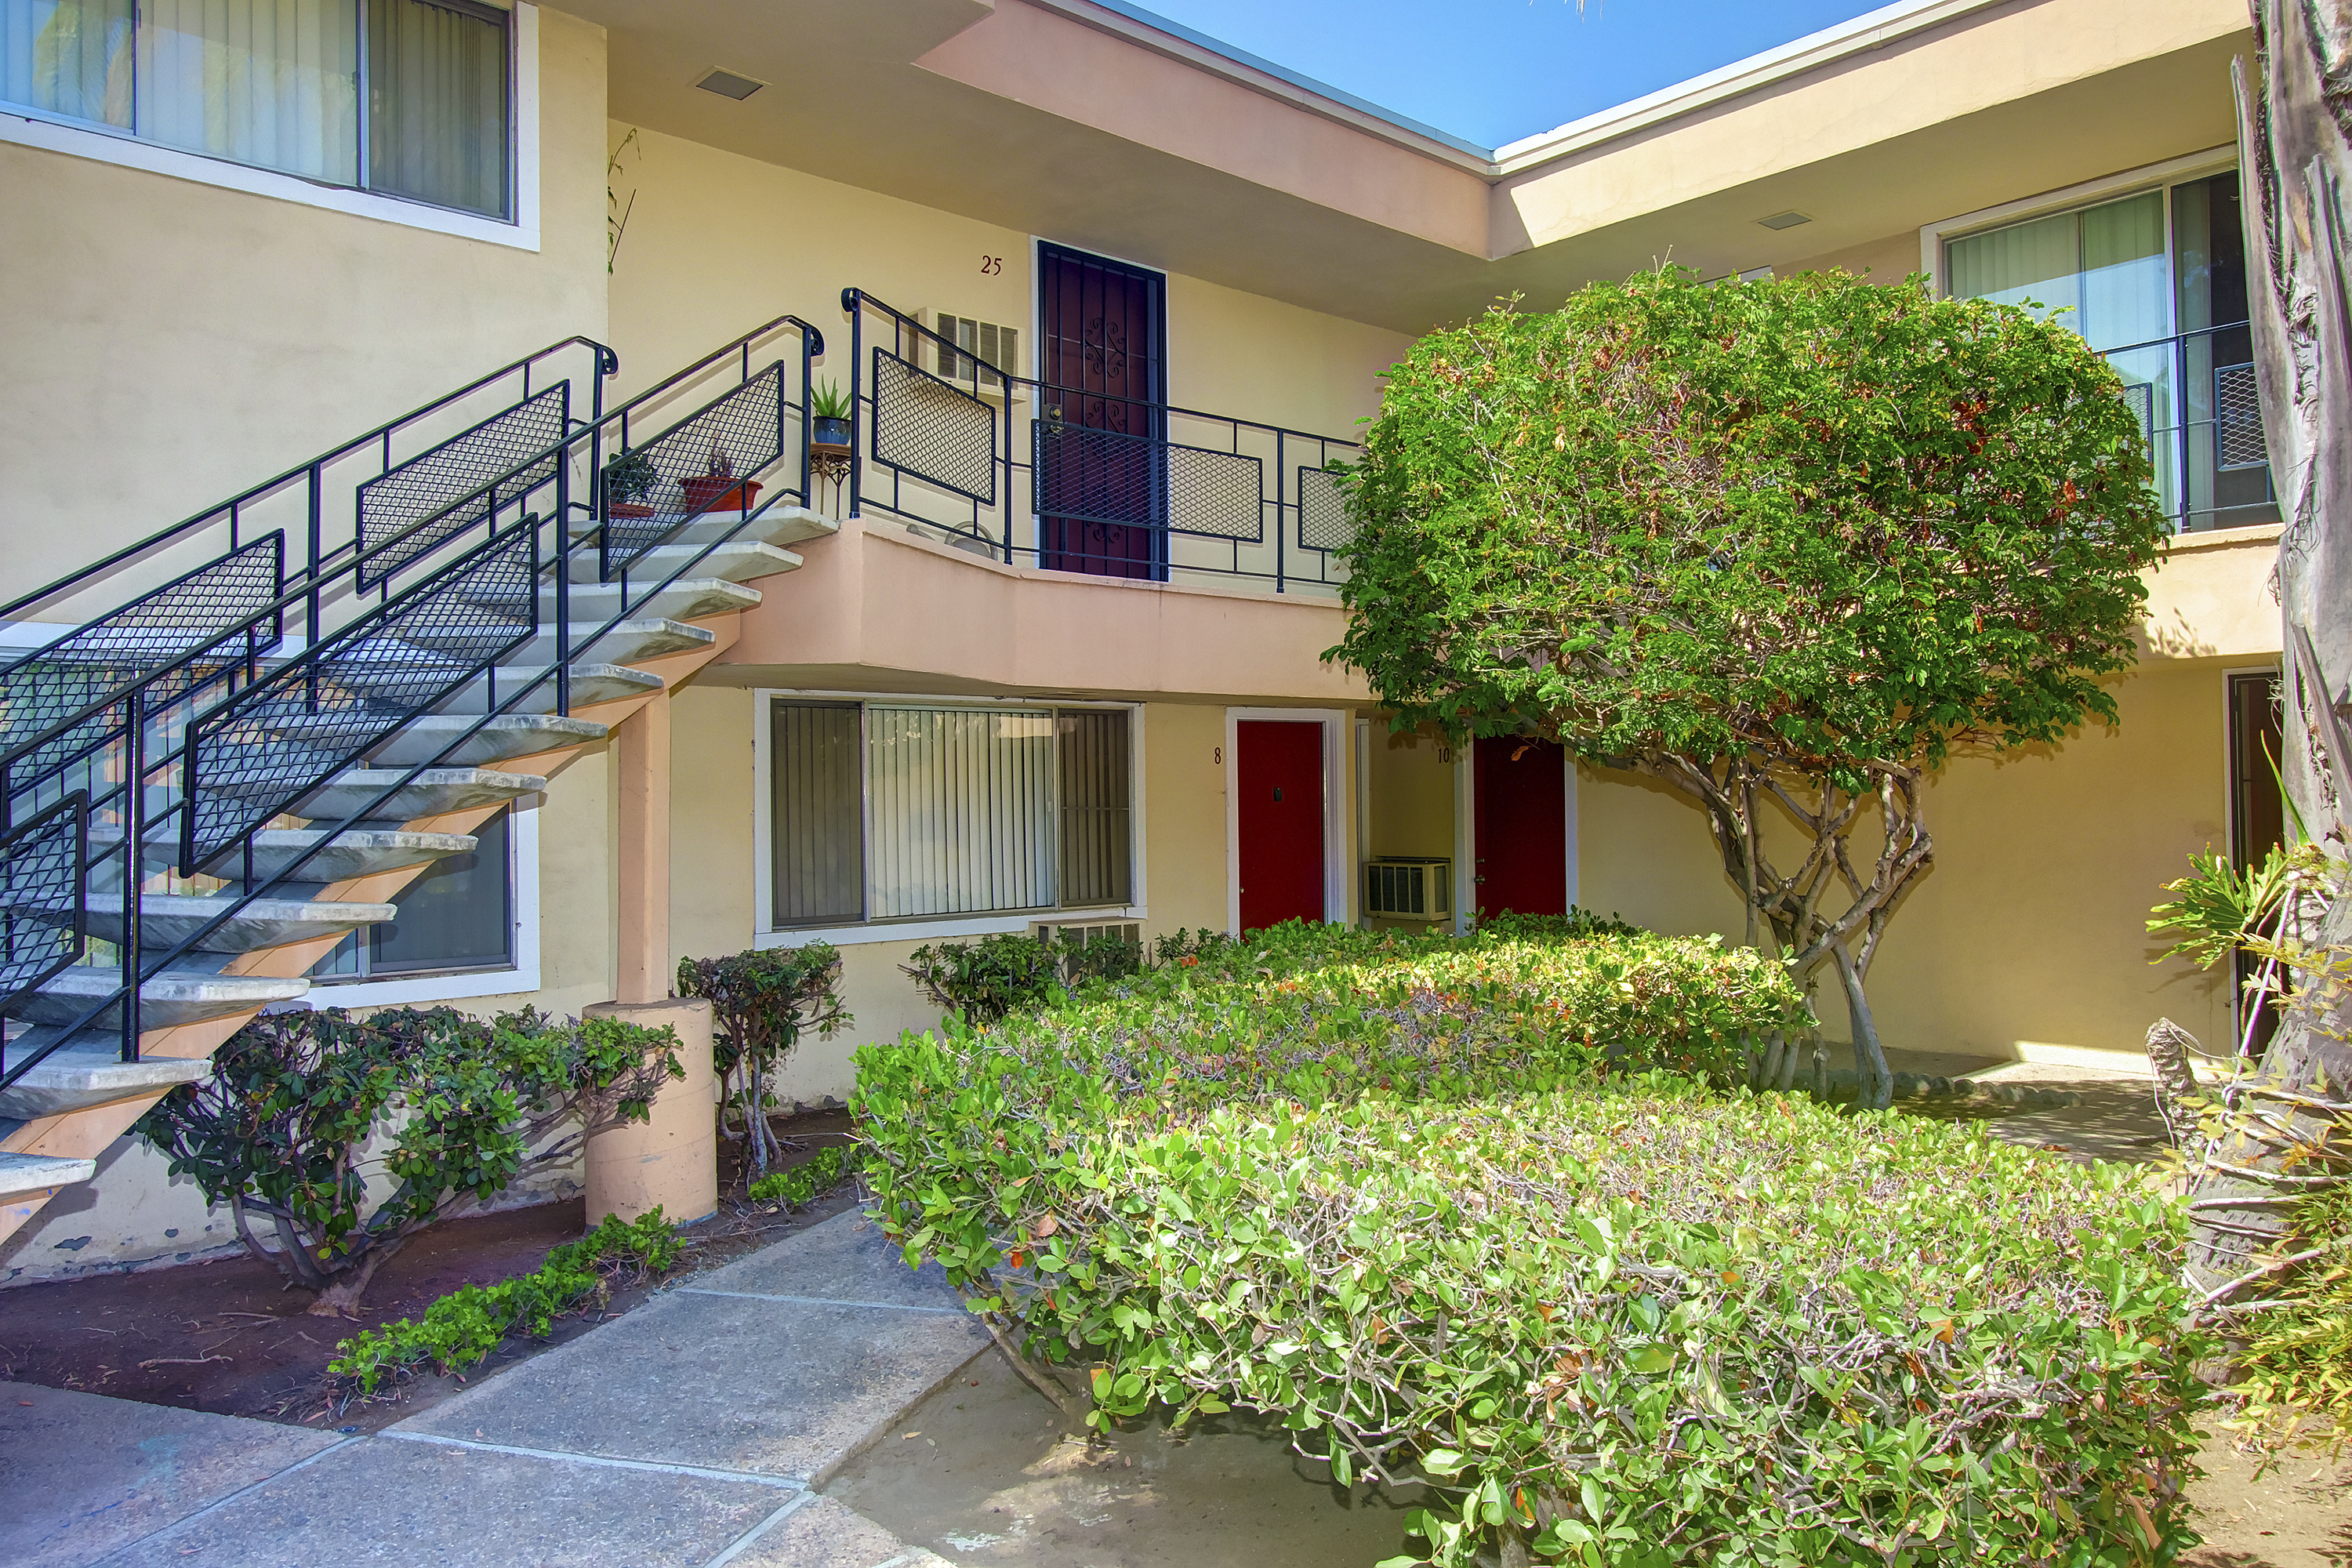 San diego apartment building sells for million san diego business journal - Apartment buildings san diego ...